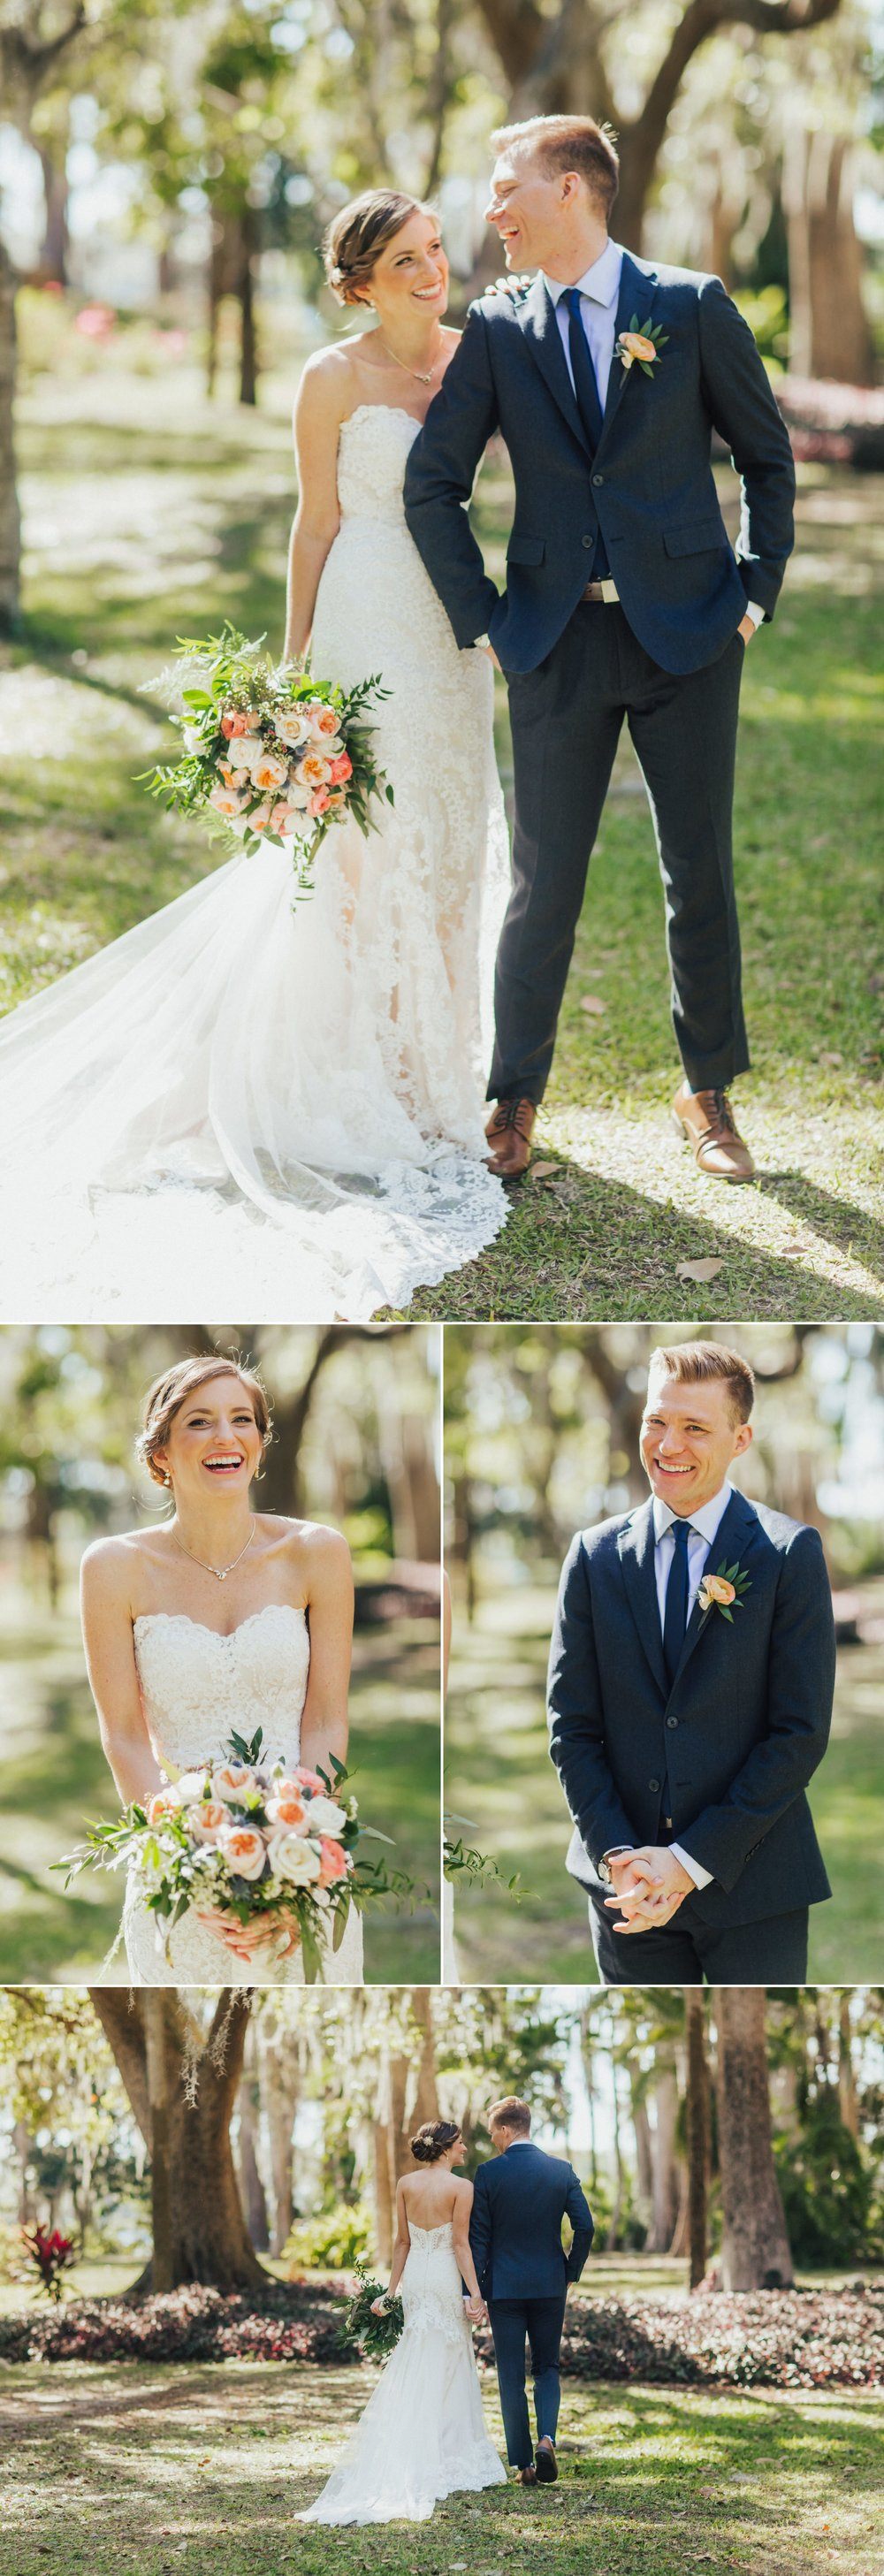 Winter Park farmers market wedding- bohemian chic floral wedding photography by Shaina DeCiryan8.jpg